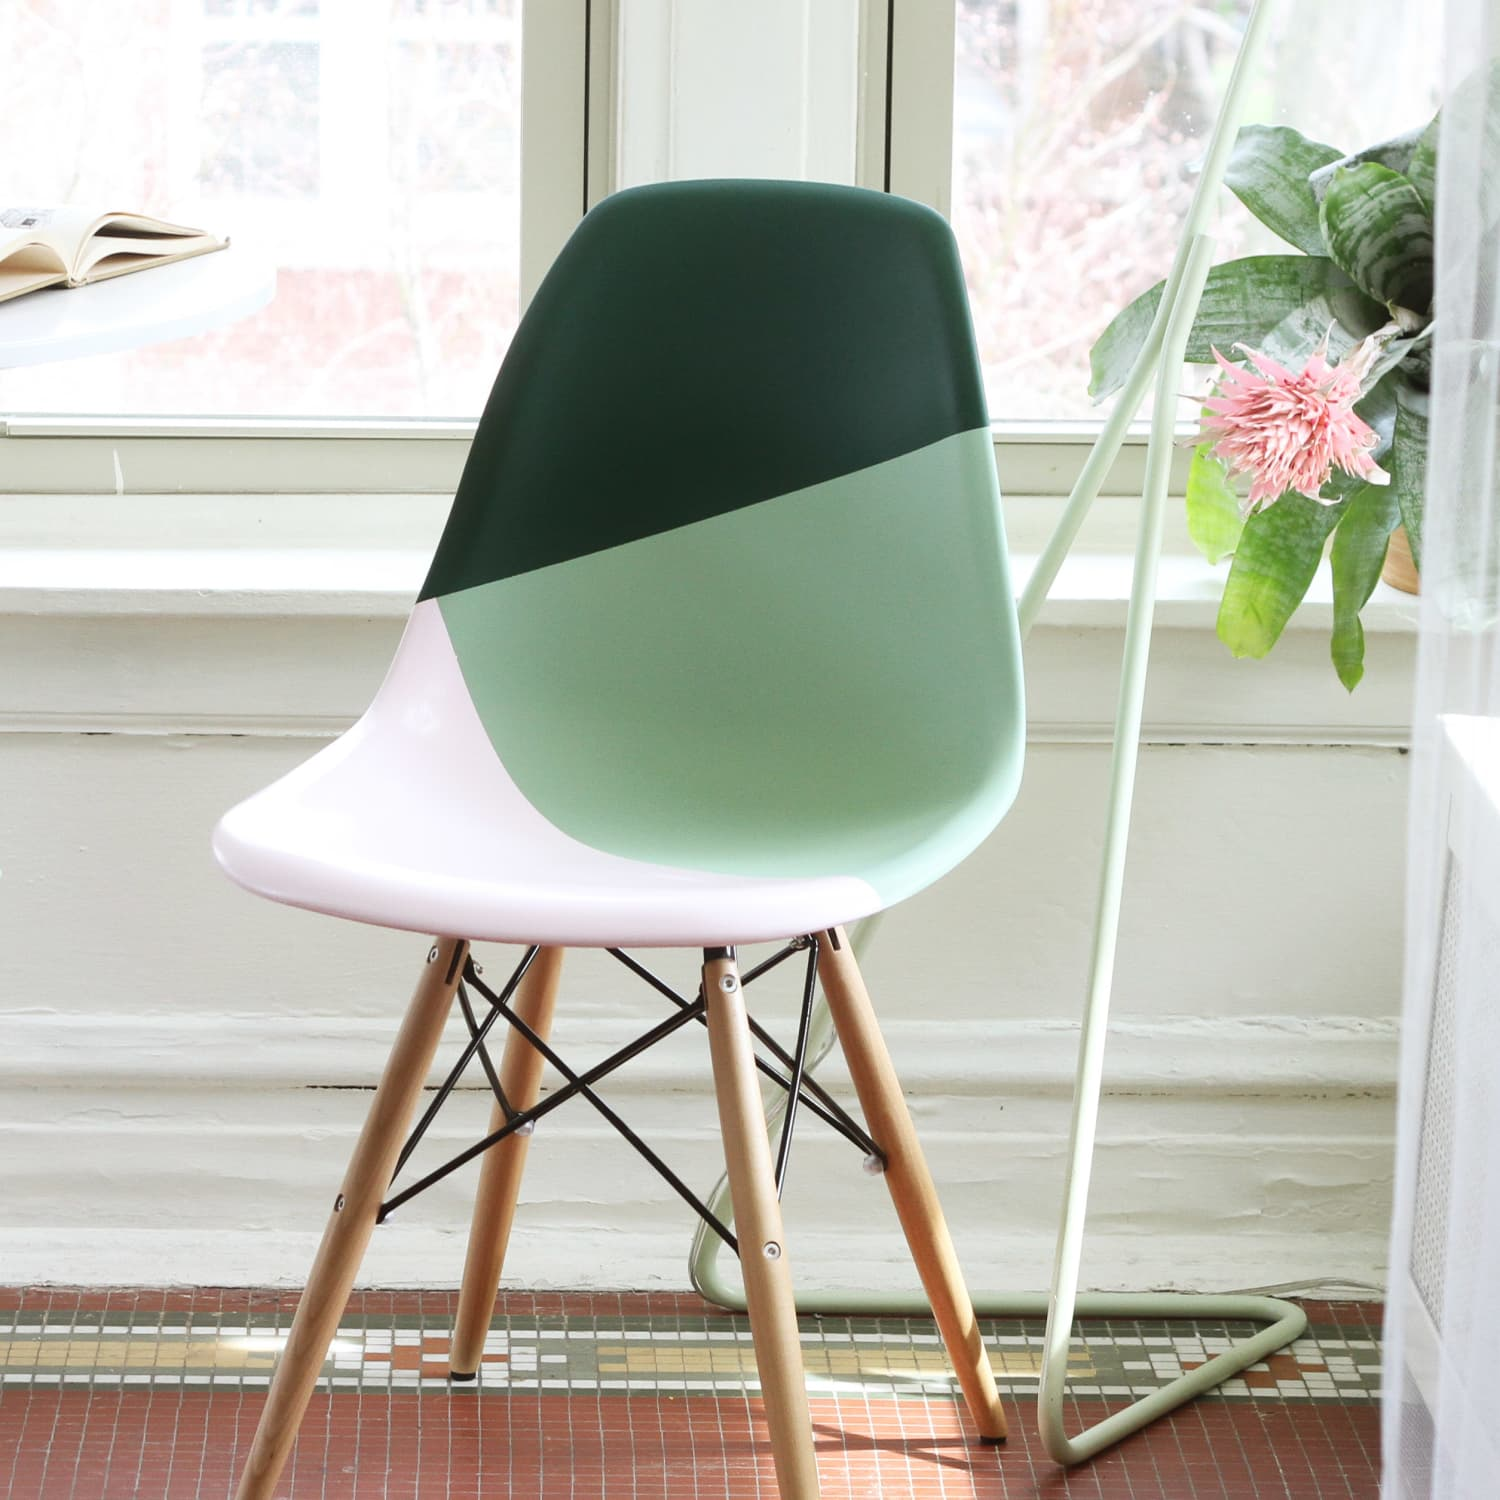 Learn How To Spray Paint Plastic The Right Way Apartment Therapy